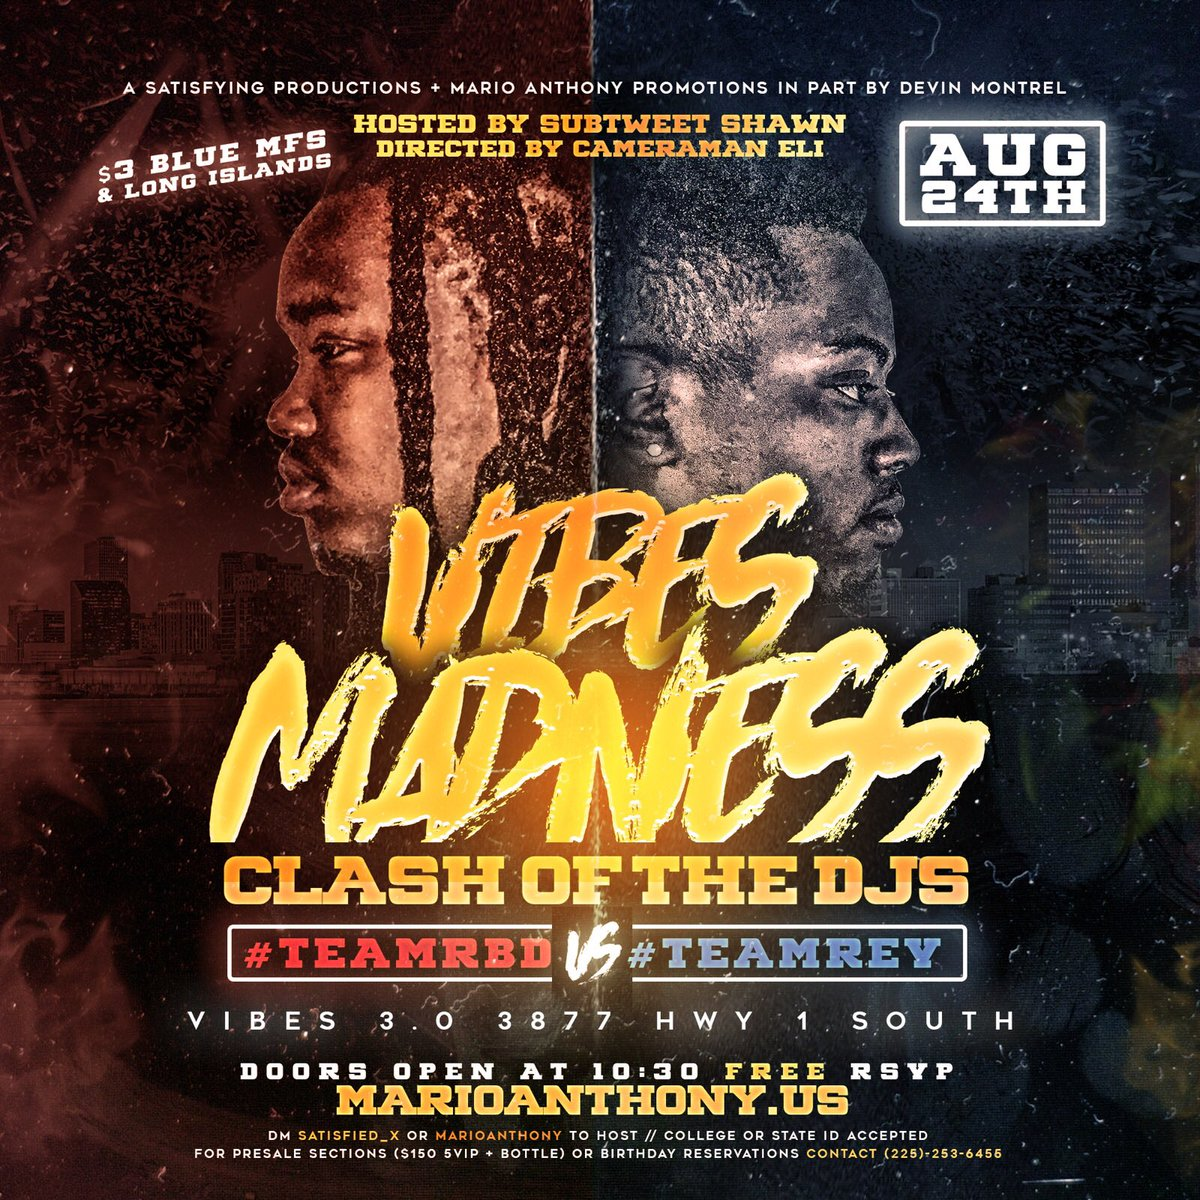 Two of the top DJs in Louisiana will clash on one night at Vibes August 24th which team are you? #VibesMadness   .         #TeamRBD or #TeamREV   RSVP now at  http:// marioanthony.us  &nbsp;  <br>http://pic.twitter.com/ZMhYgBCSq0